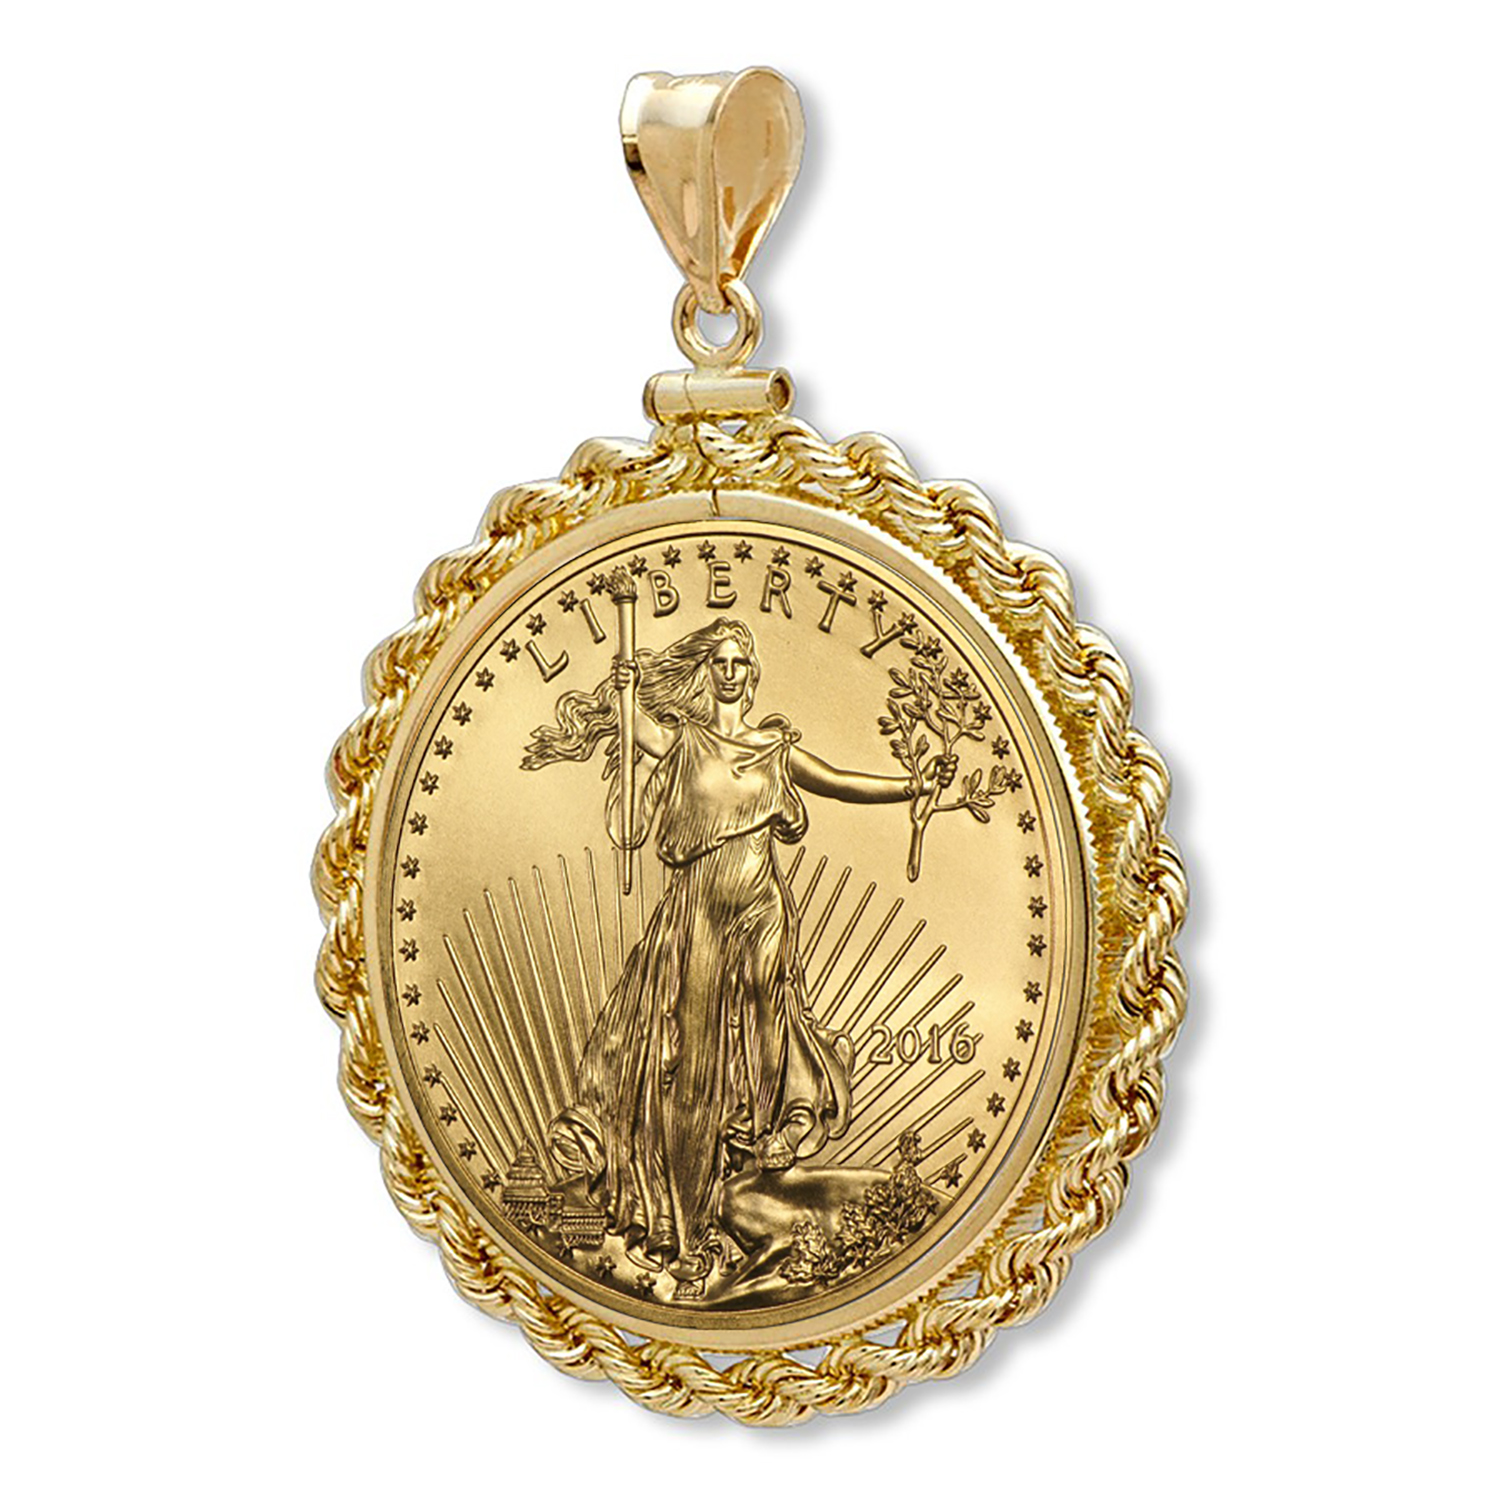 2016 1 oz Gold Eagle Pendant (Rope-ScrewTop Bezel)